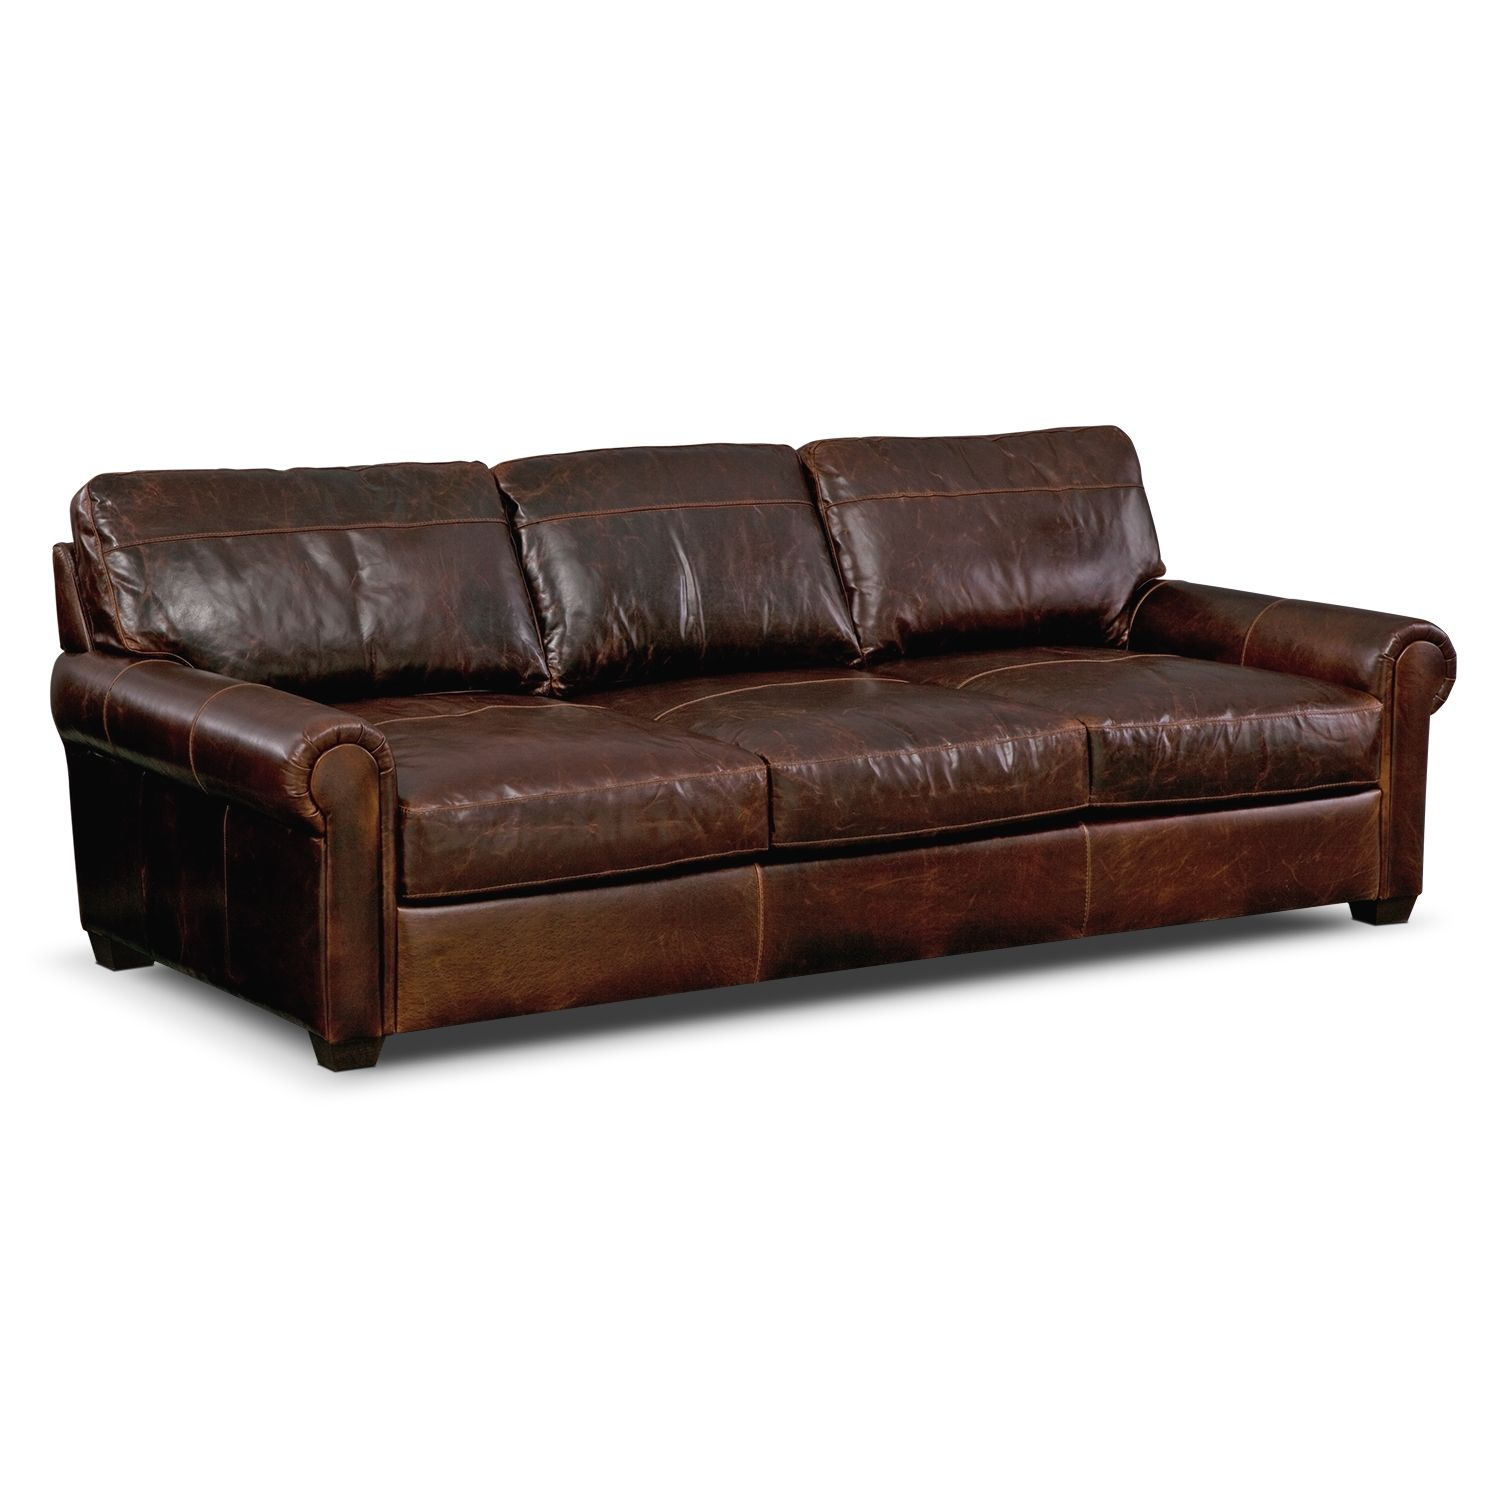 Value City Furniture Living Room Burnham Leather Sofa Value City Furniture Knock Off Restoration